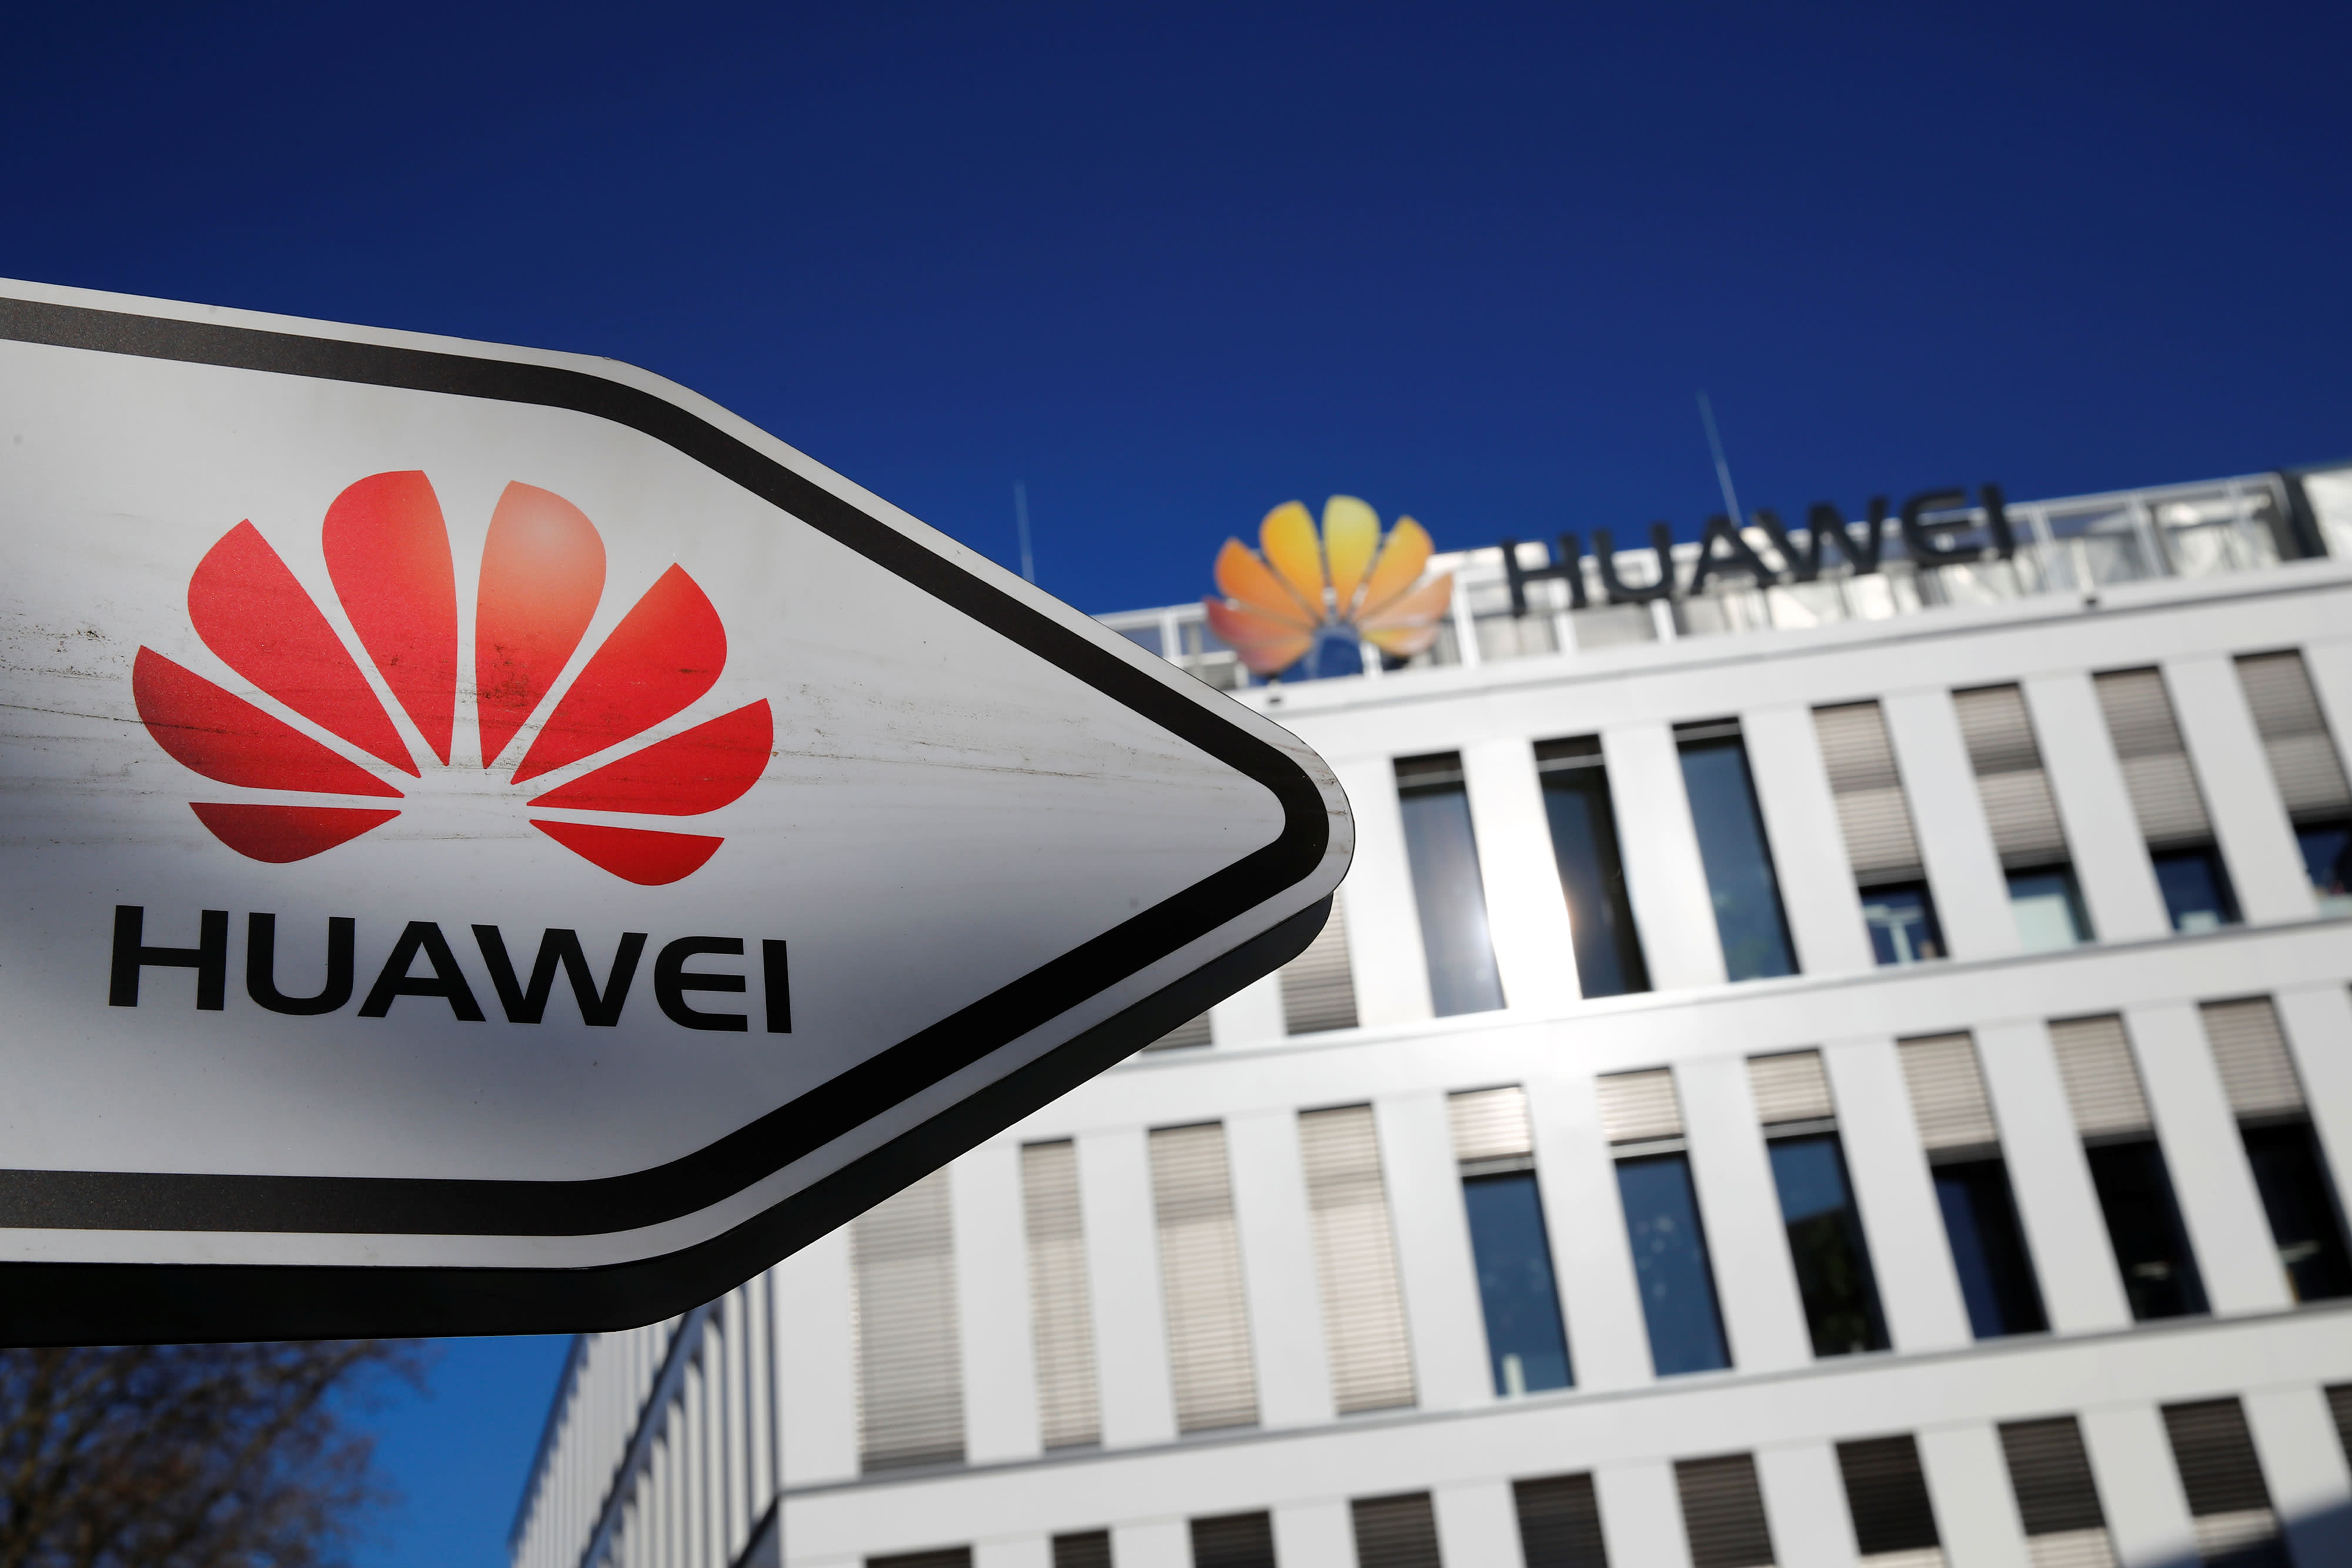 Germany set to allow Huawei into 5G networks, defying pressure from the US